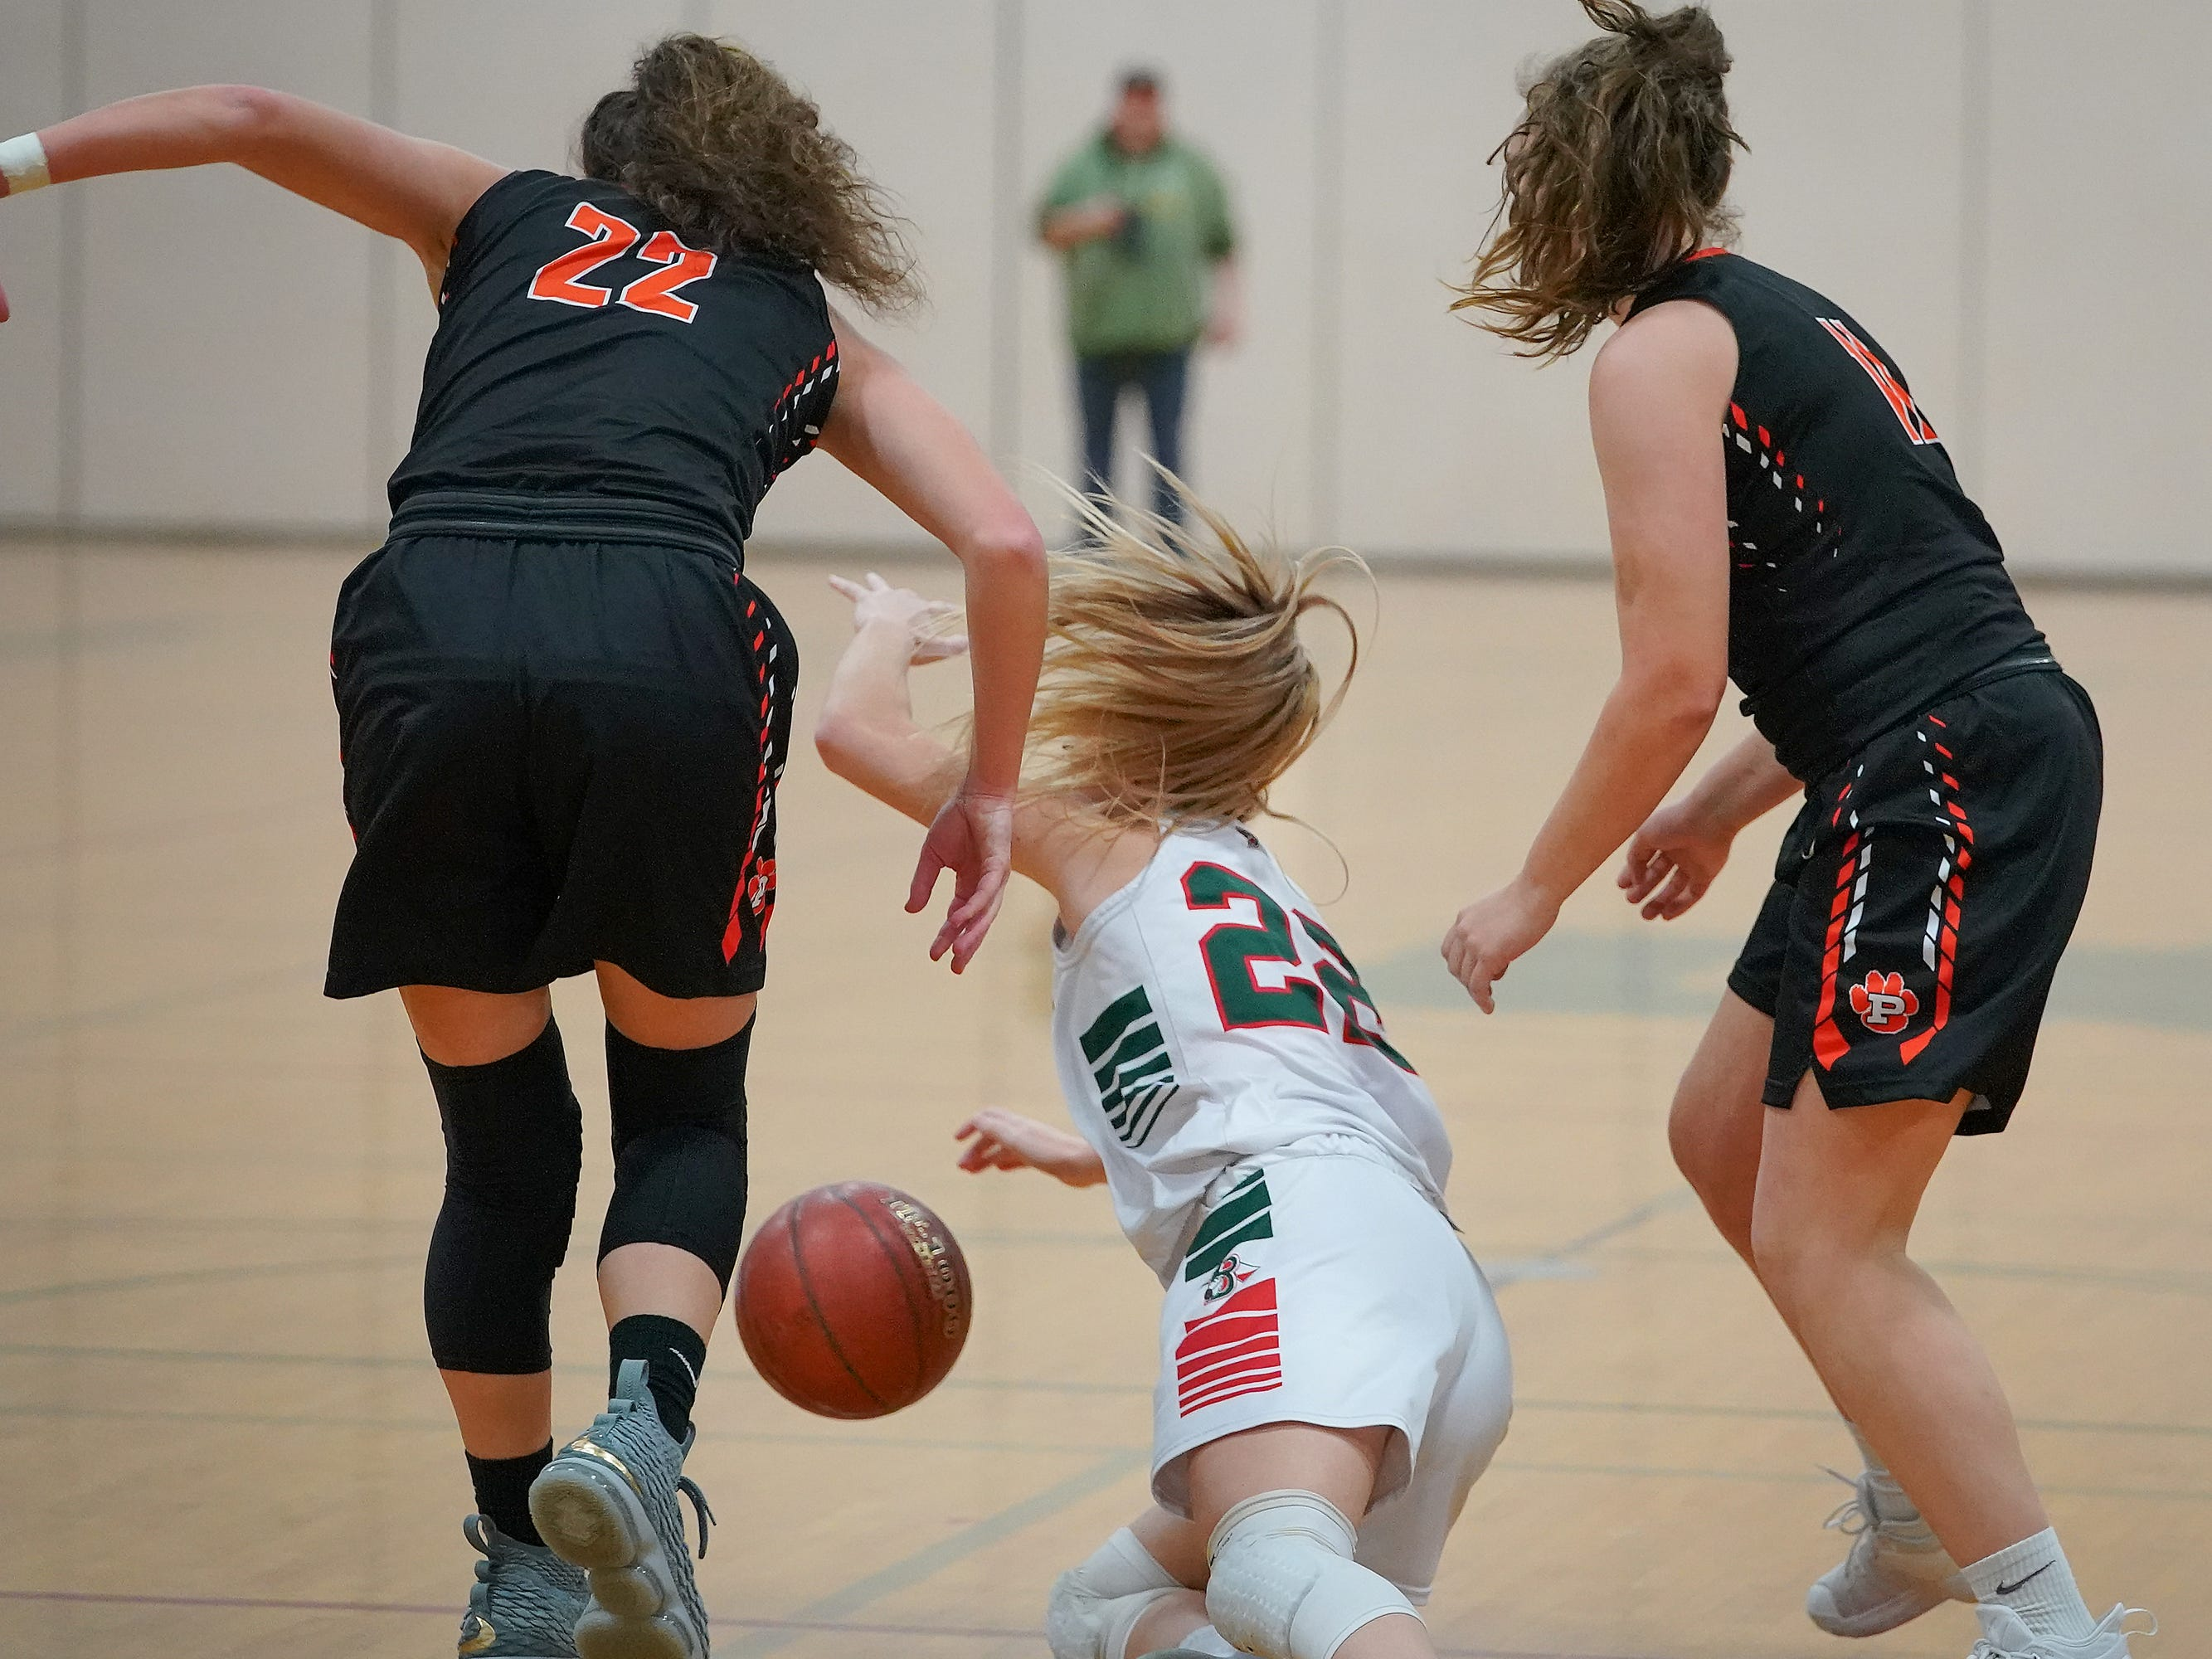 Mari Beltran (22) of Berlin falls while chasing a loose ball. The Berlin Indians hosted the Plymouth Panthers in an East Central Conference basketball game Thursday evening, December 13, 2018.